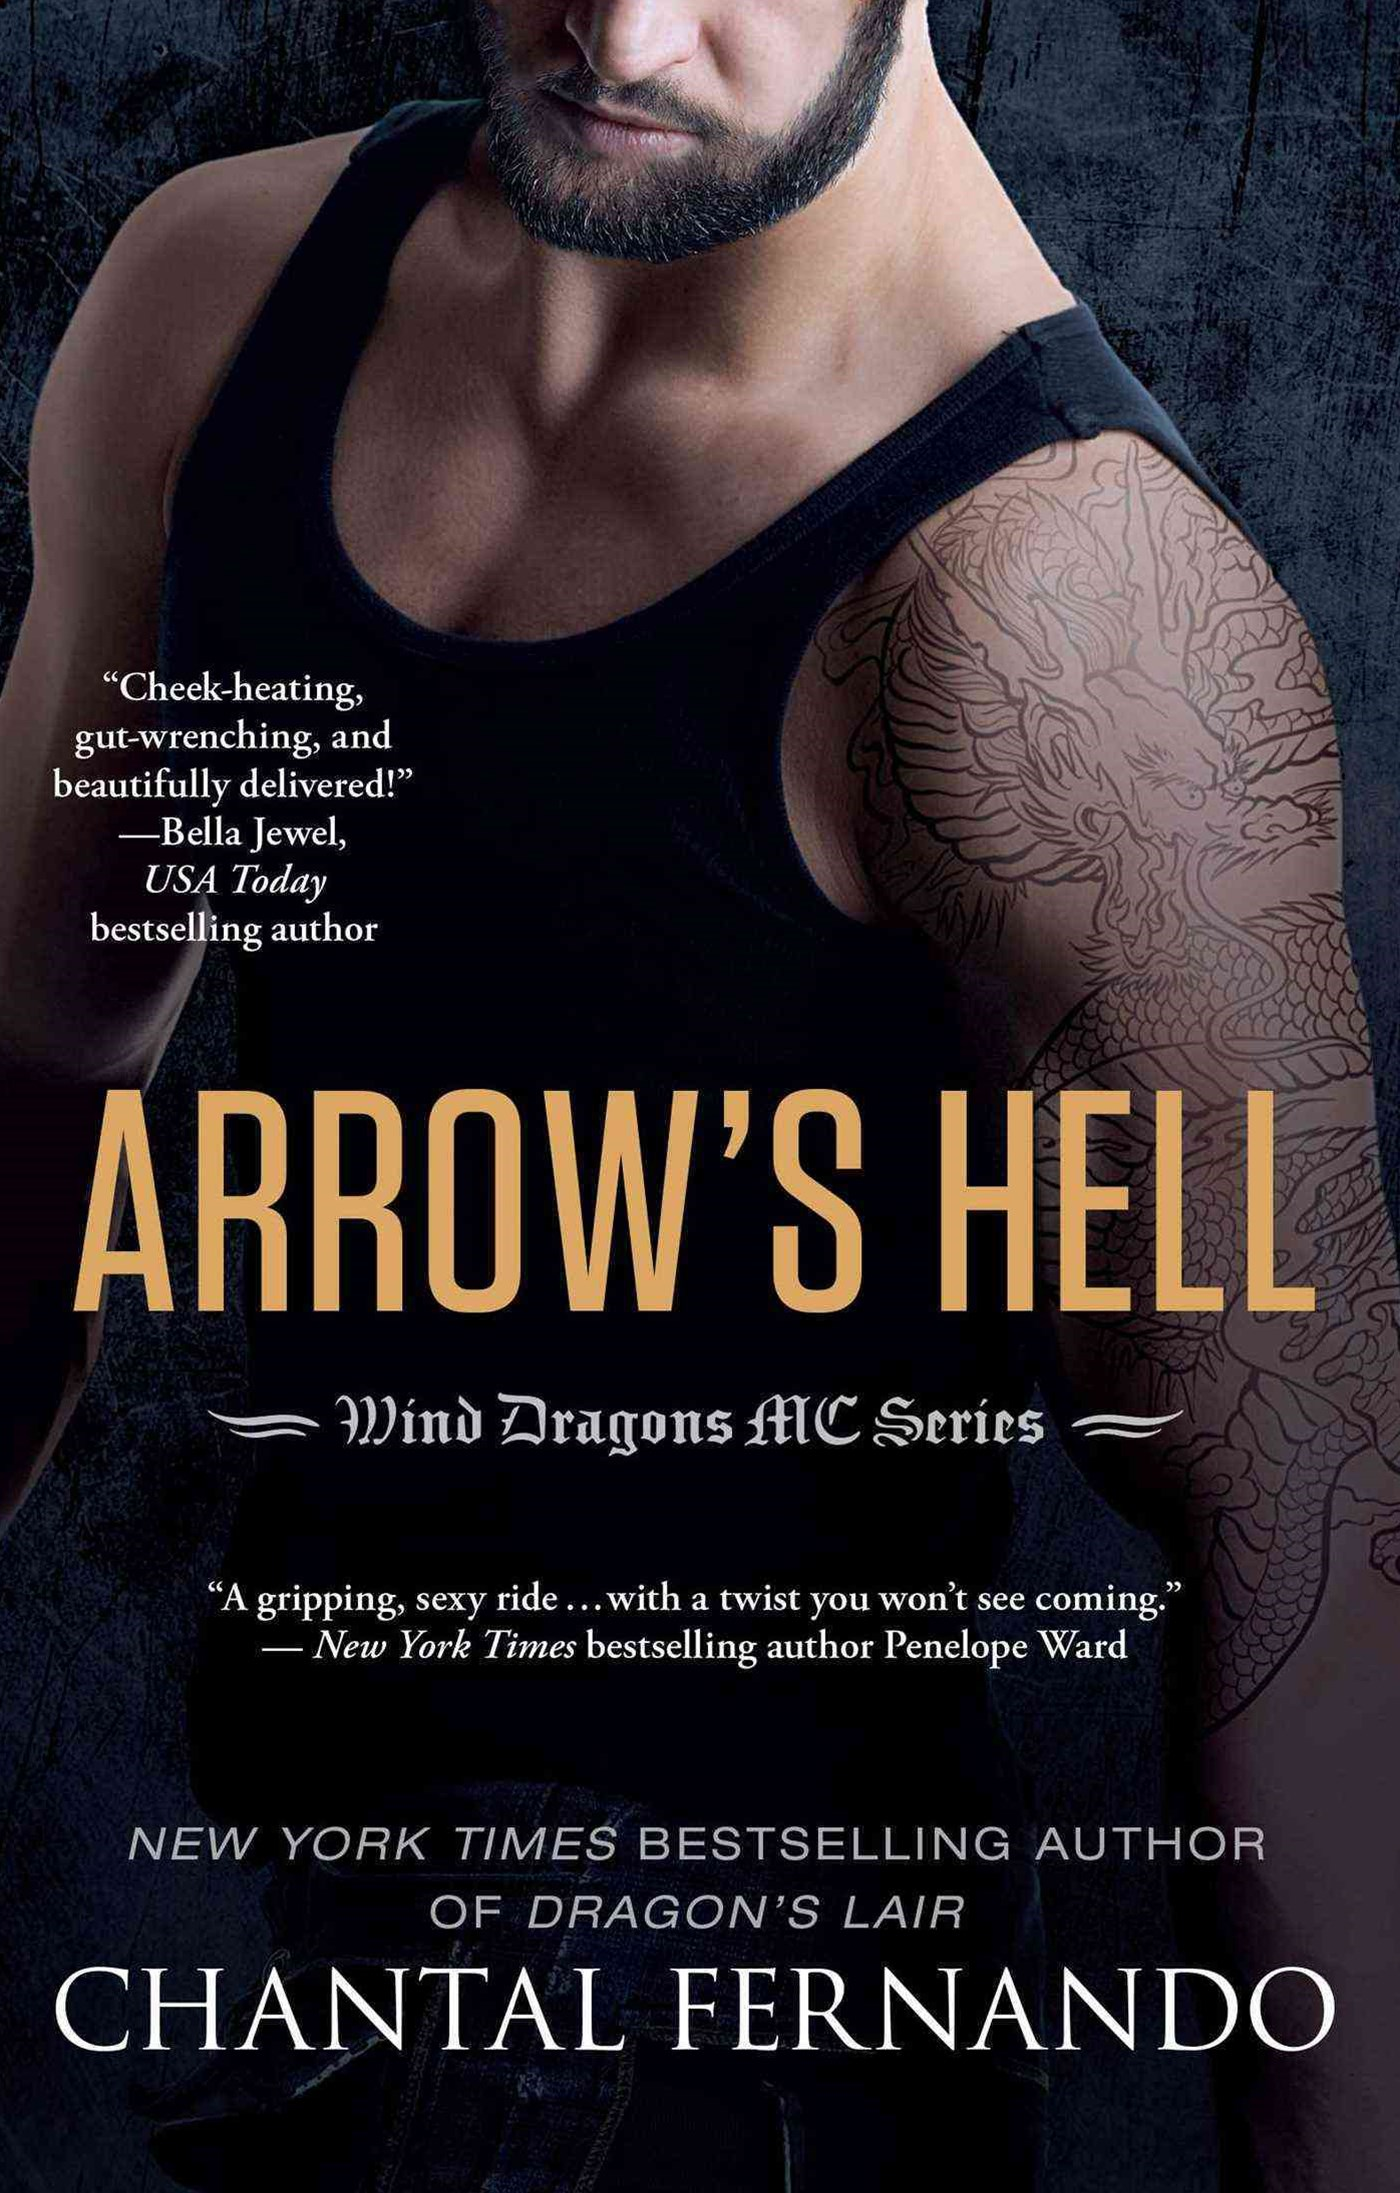 Wind Dragons Motorcycle Club: Arrow's Hell